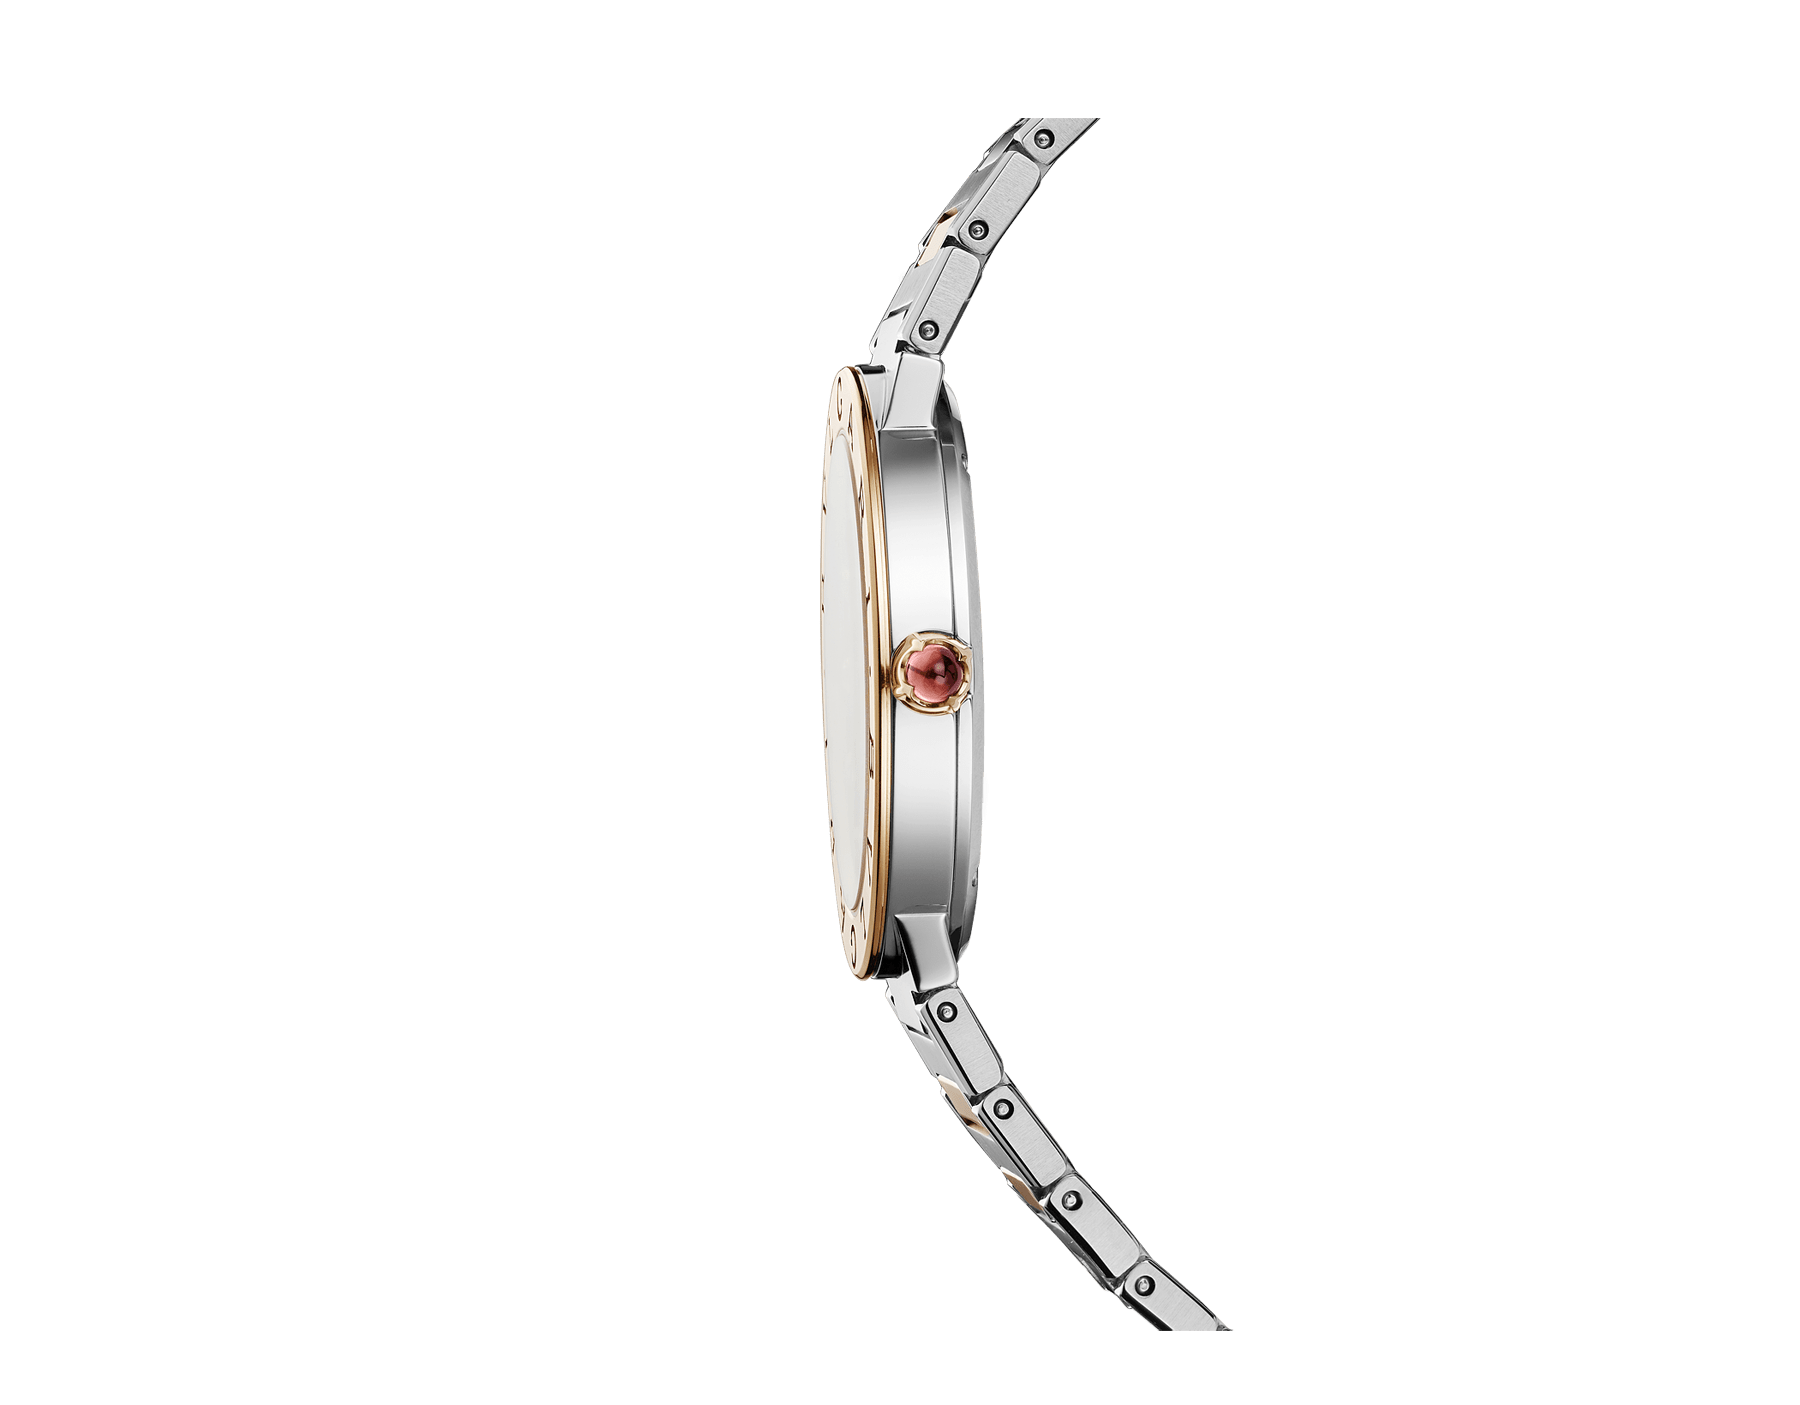 BVLGARI BVLGARI LADY watch with stainless steel case, 18 kt rose gold bezel engraved with double logo, grey lacquered dial, diamond indexes, and stainless steel and 18 kt rose gold bracelet. 103067 image 3